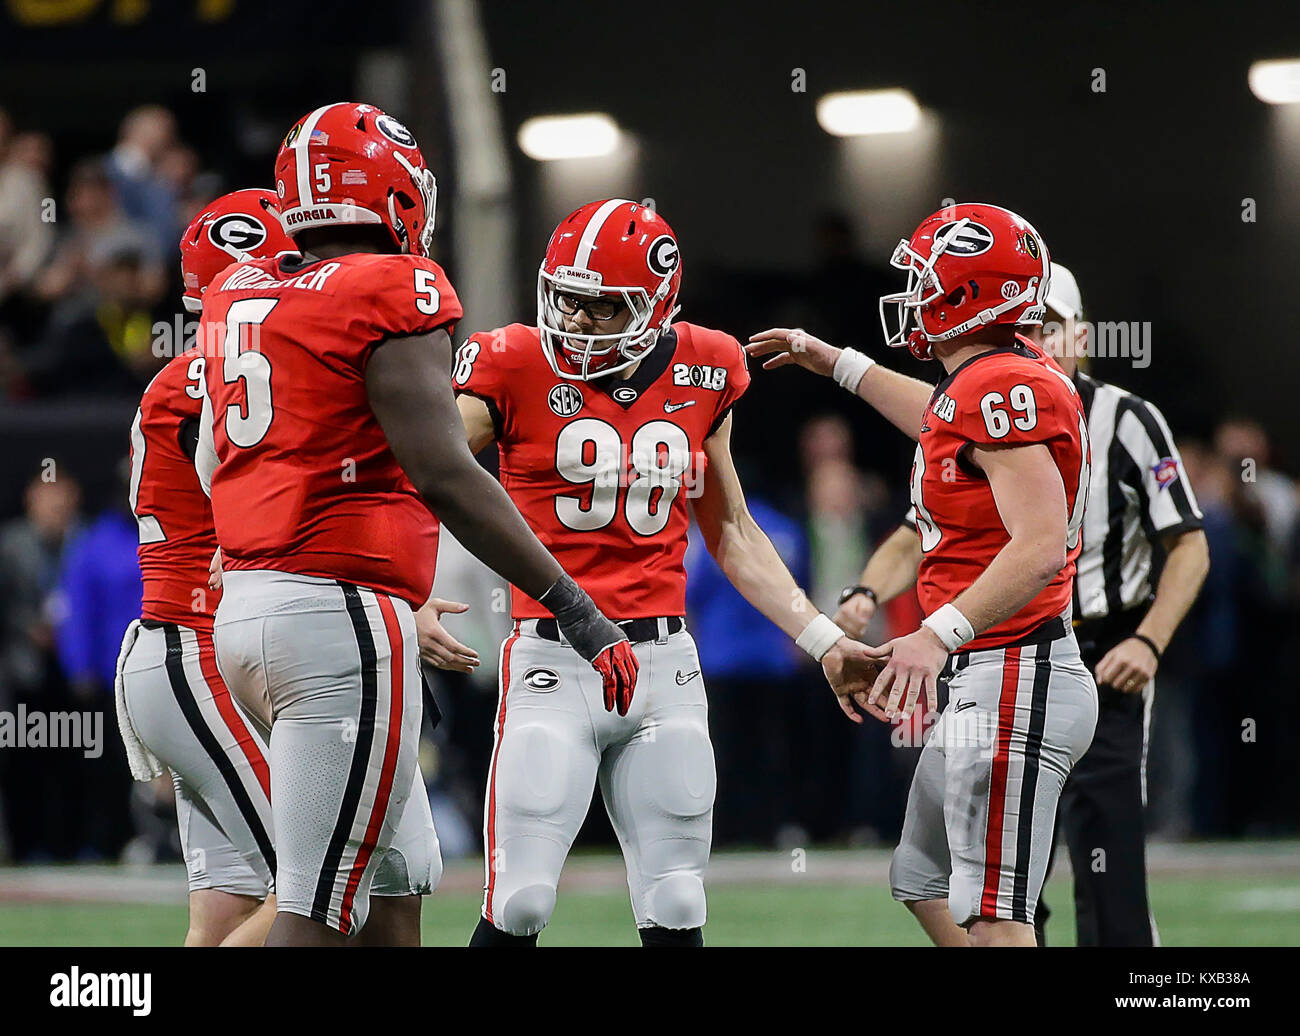 the best attitude 93bf8 5257c Atlanta, GA, USA. 8th Jan, 2018. Georgia Bulldogs PK #98 ...